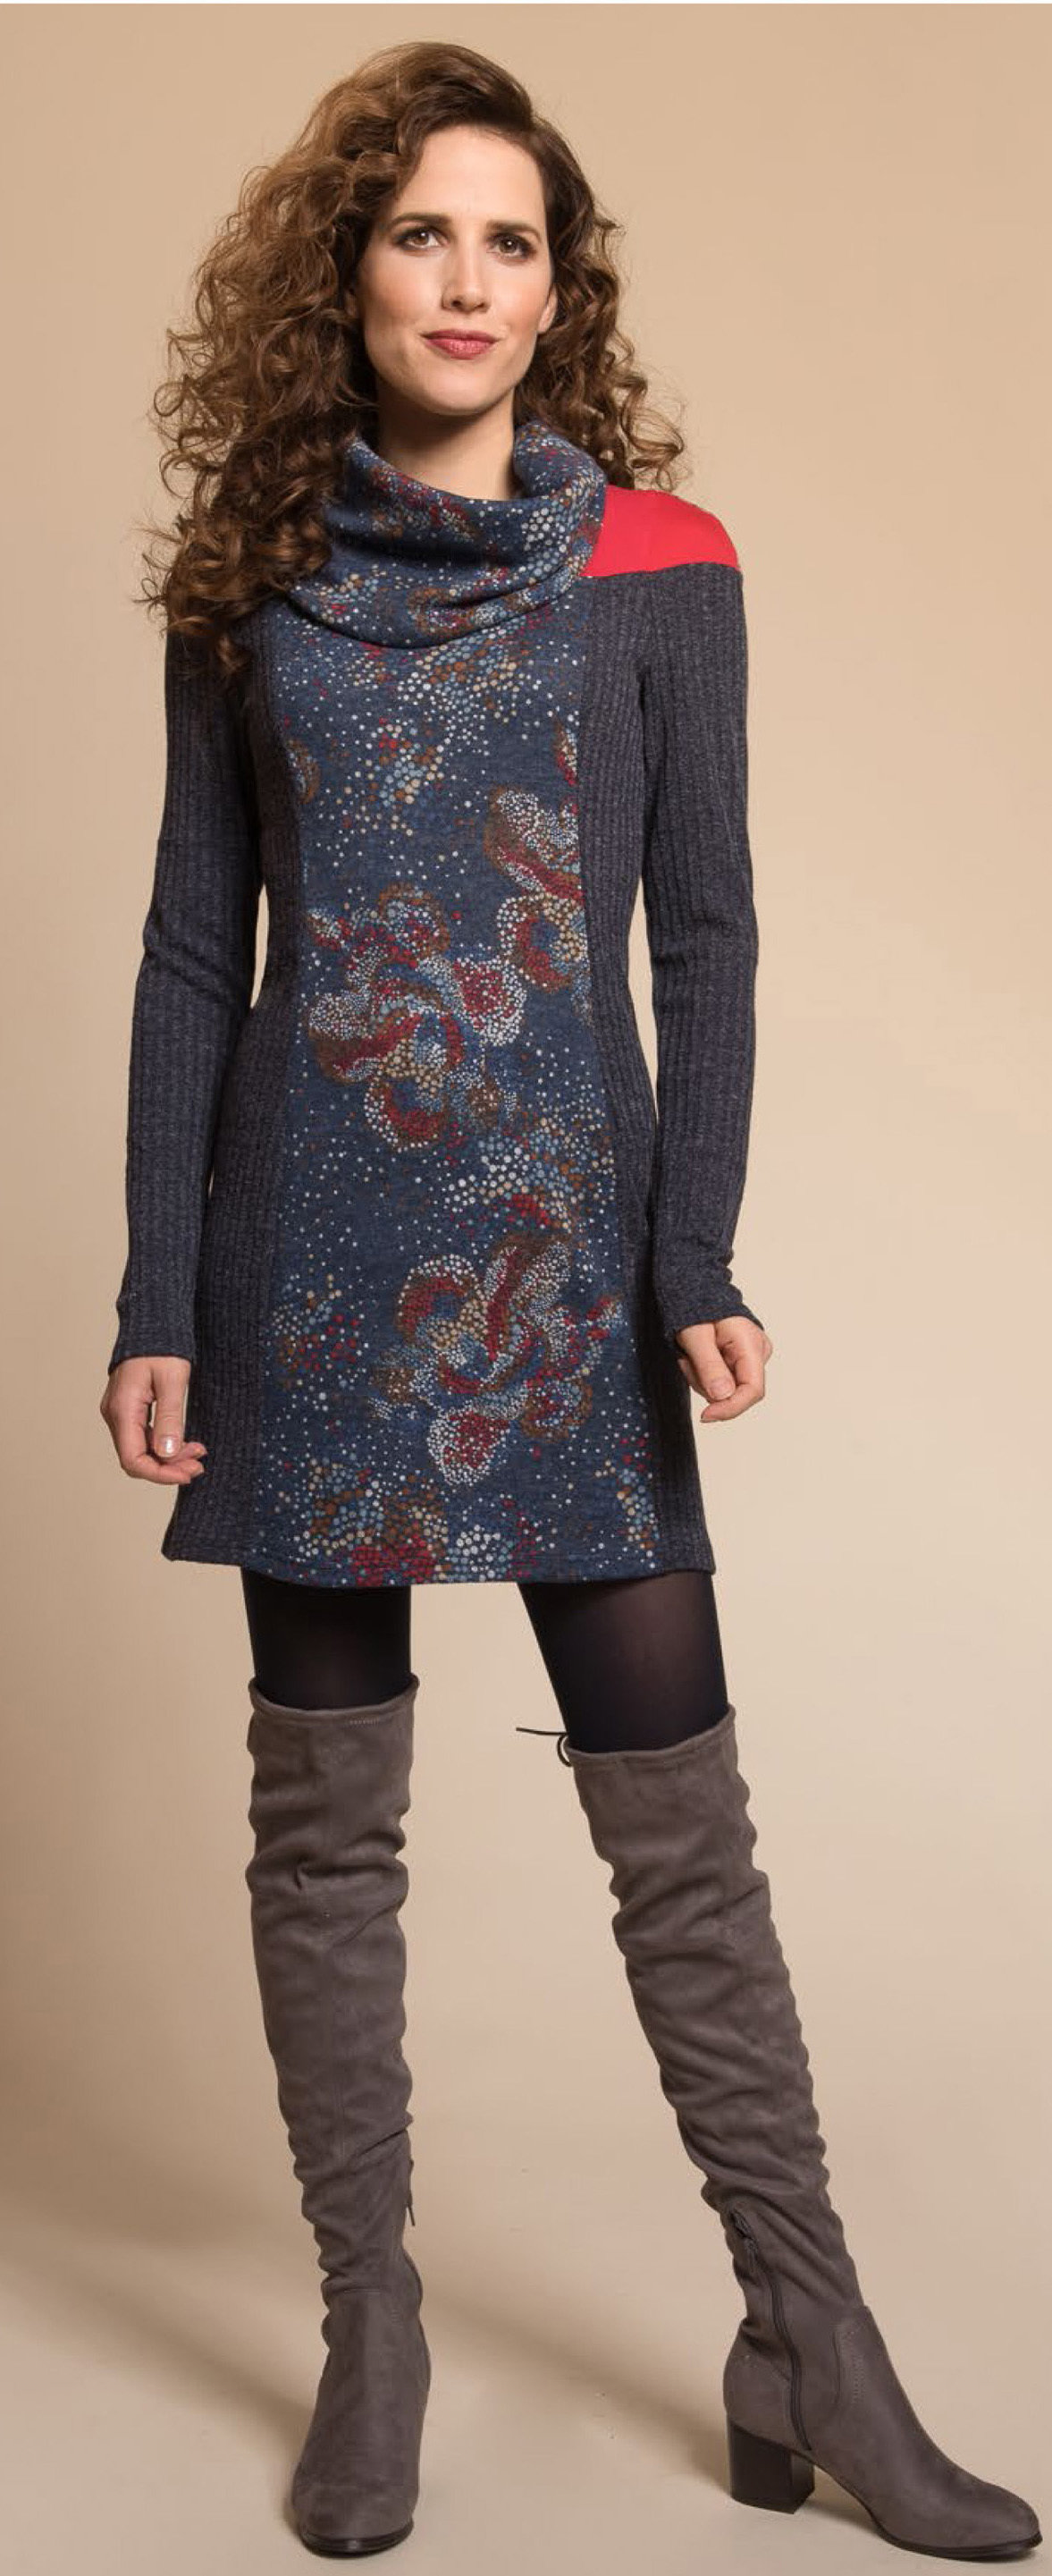 Myco Anna: Cosmic Eco-Wear Asymmetrical Patchwork Sweater Dress